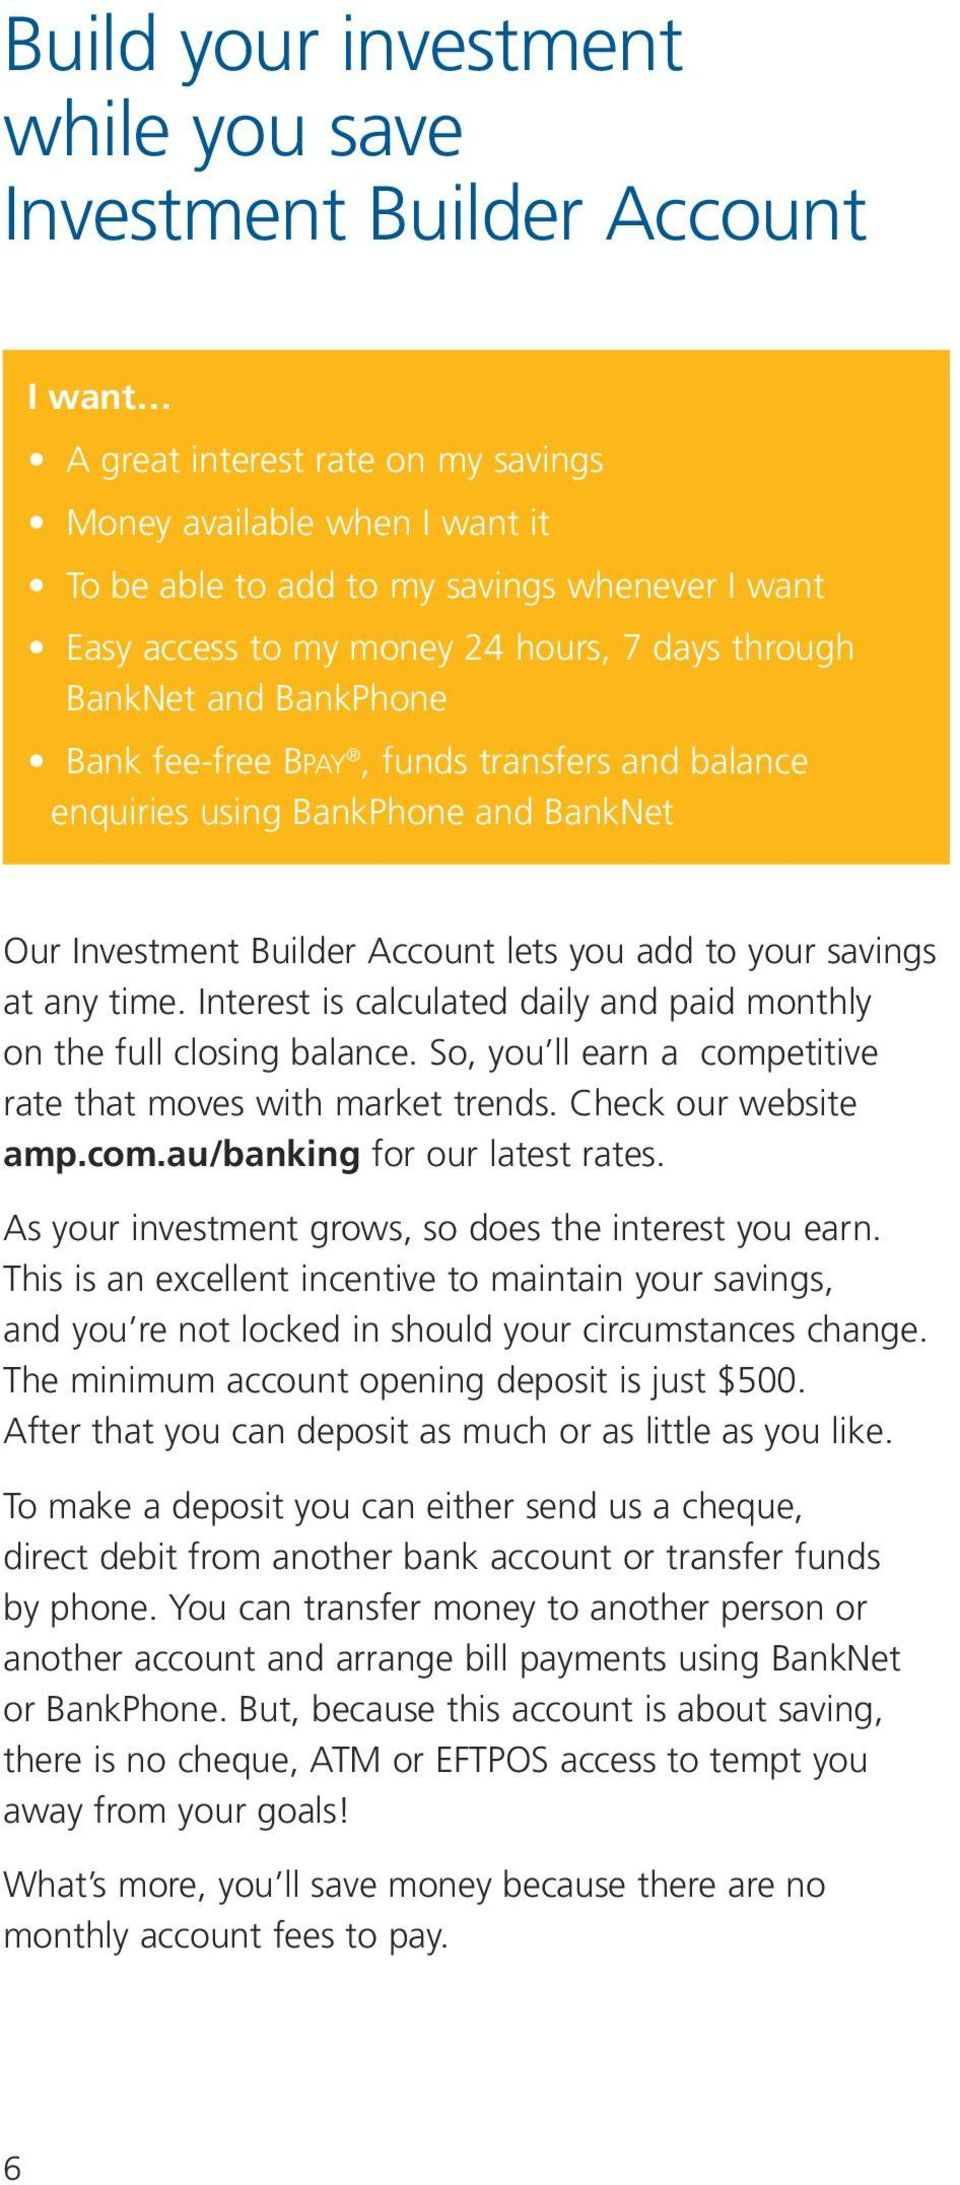 savings at any time. Interest is calculated daily and paid monthly on the full closing balance. So, you ll earn a competitive rate that moves with market trends. Check our website amp.com.au/banking for our latest rates.